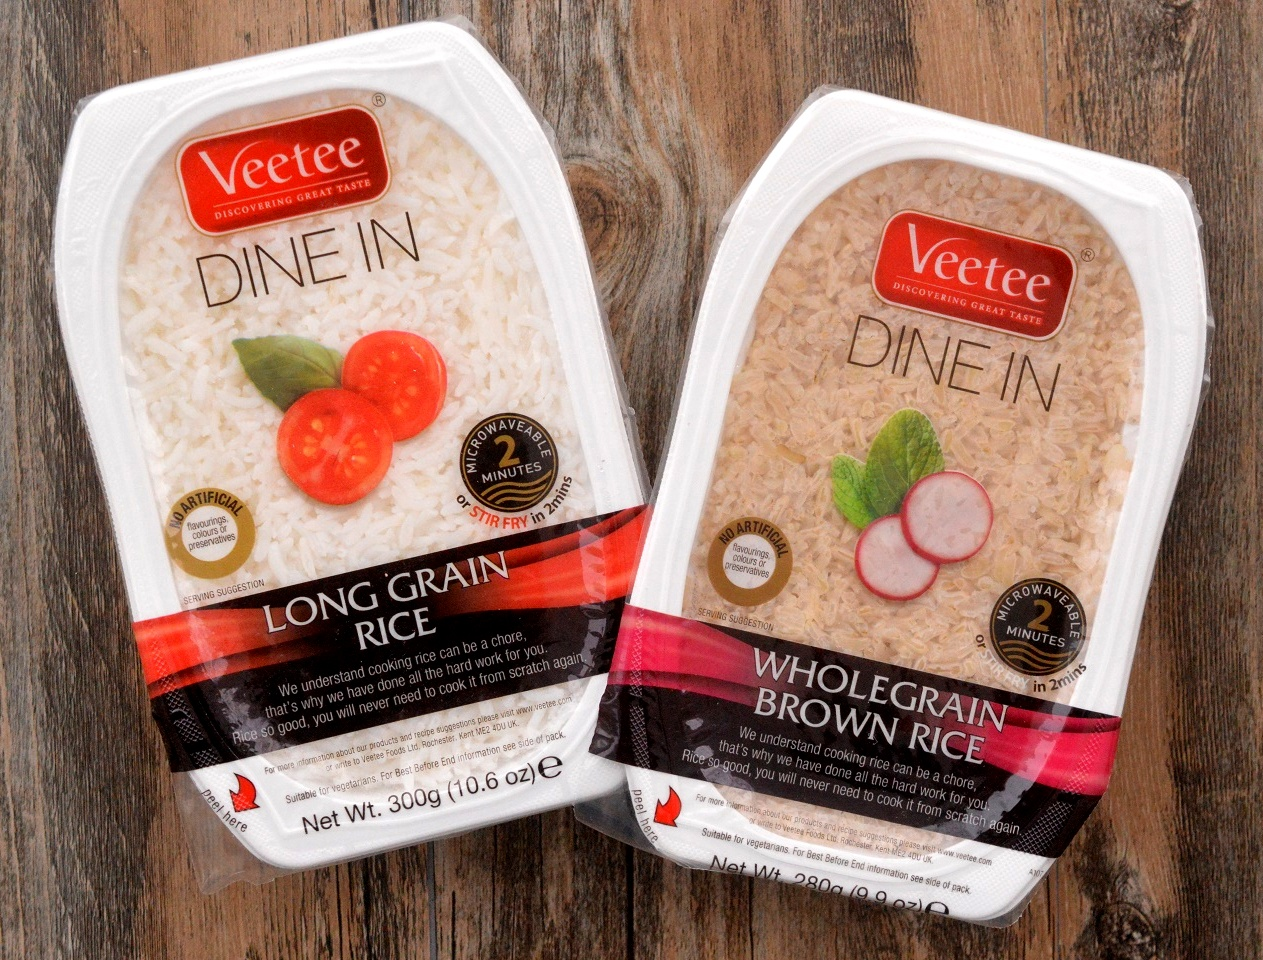 Veetee Dine In Rice